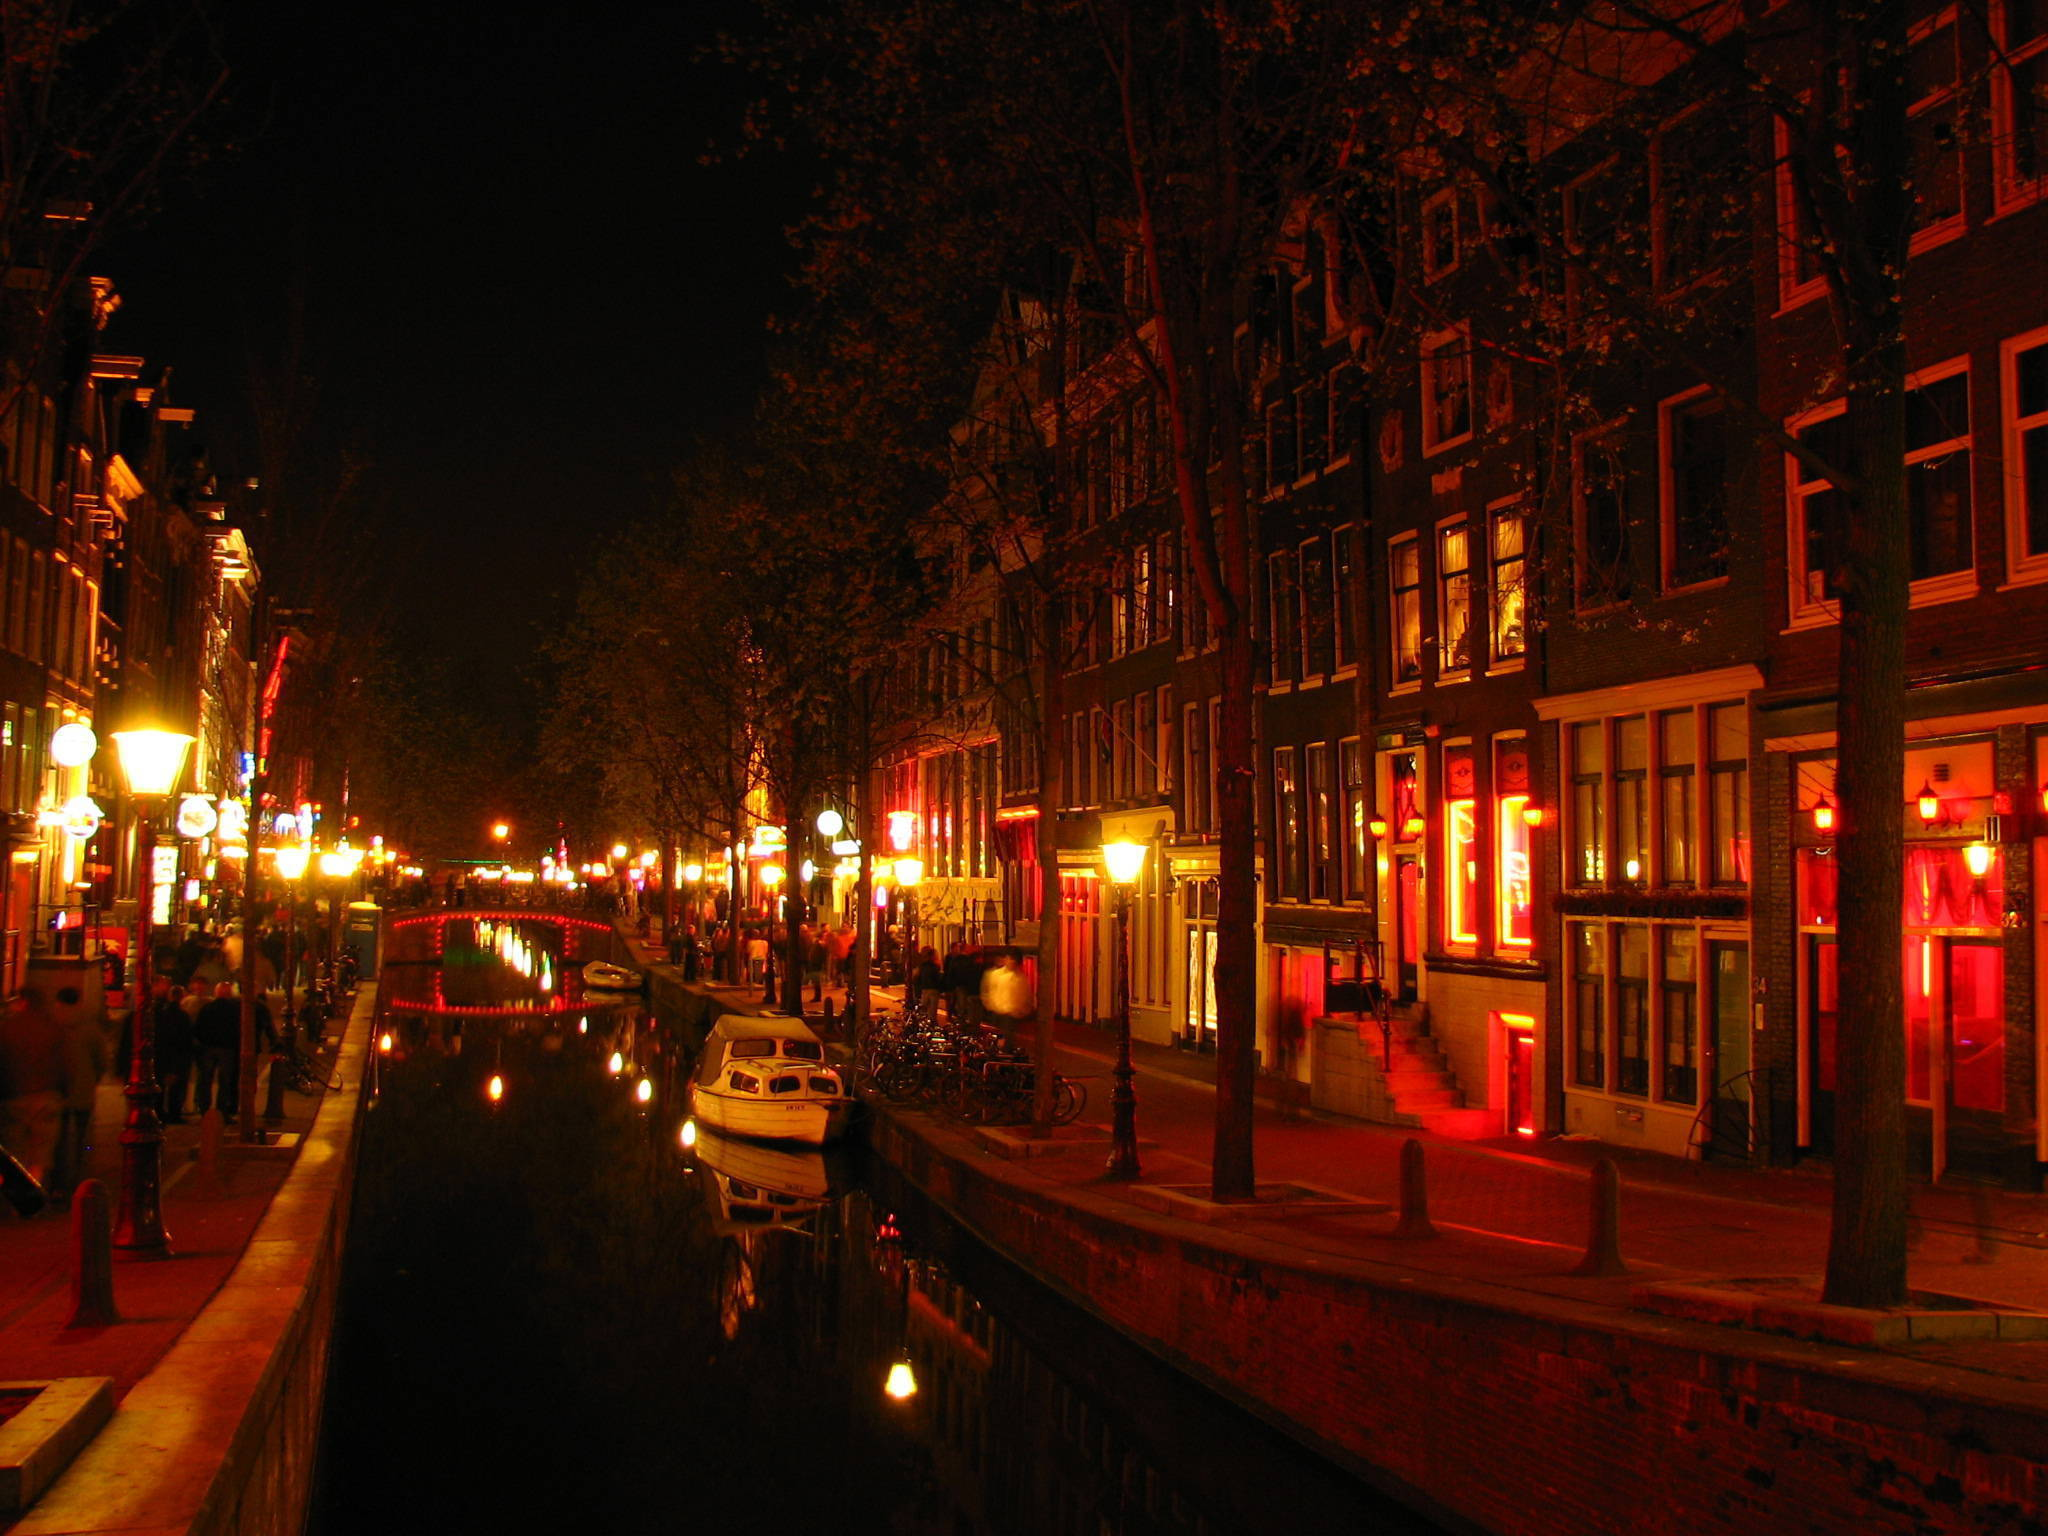 RED LIGHT DISTRICT(FILEminimizer)